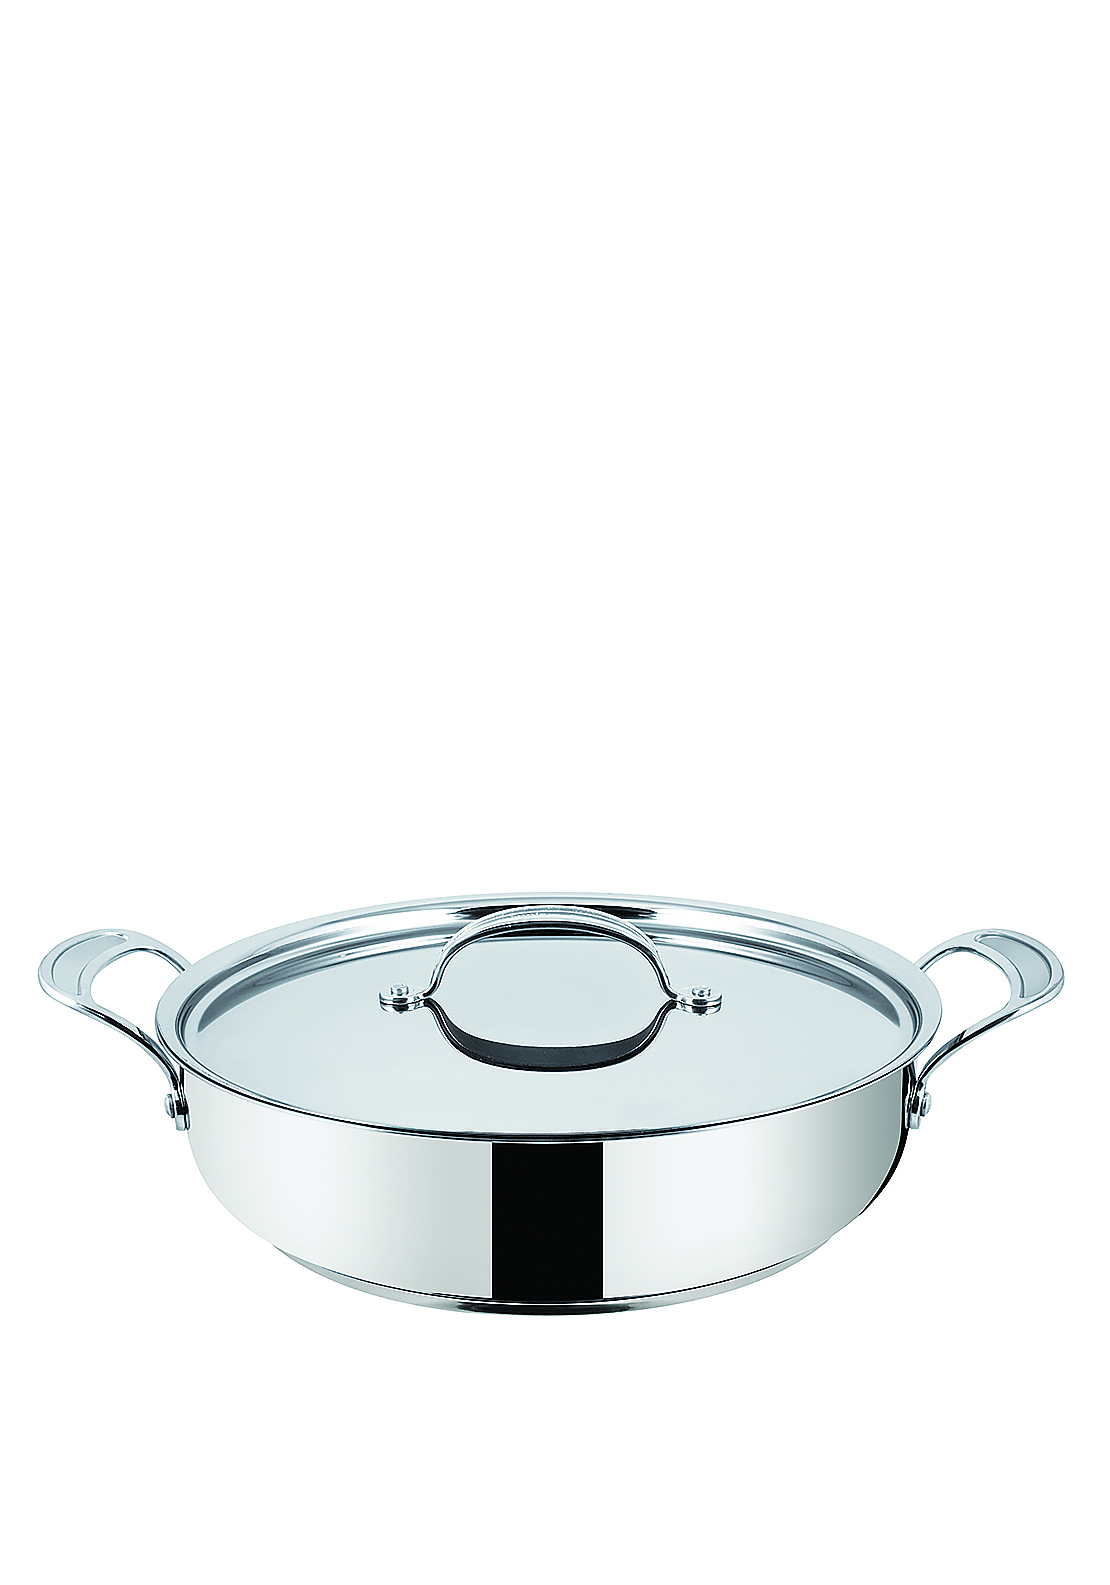 Jamie Oliver Stainless Steel Shallow Pan With Lid